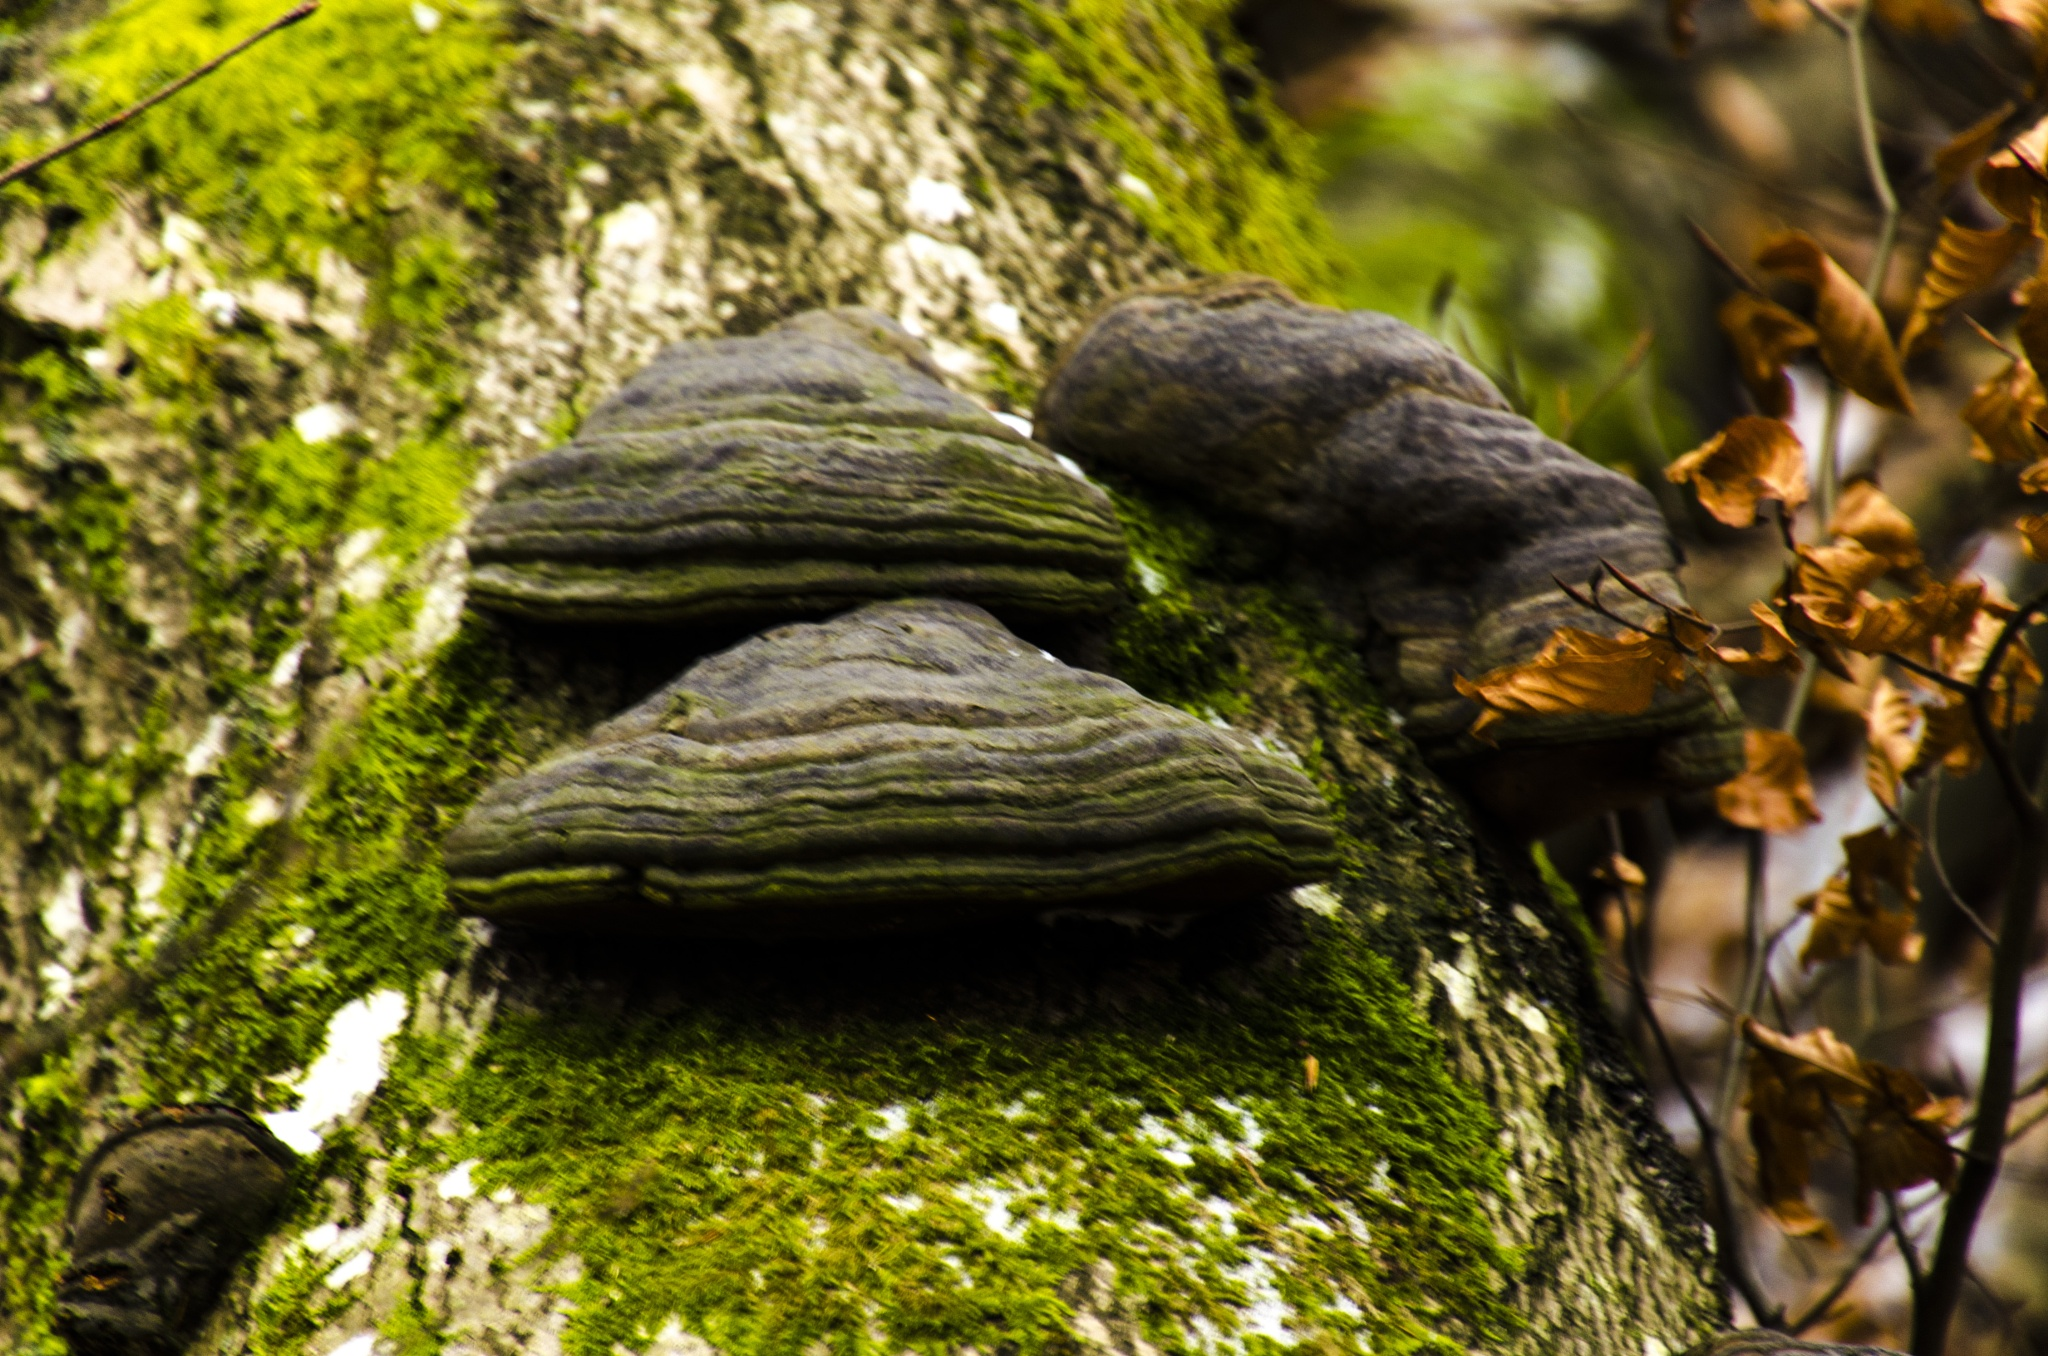 Fungus that grows on trees by Johnny Lythell